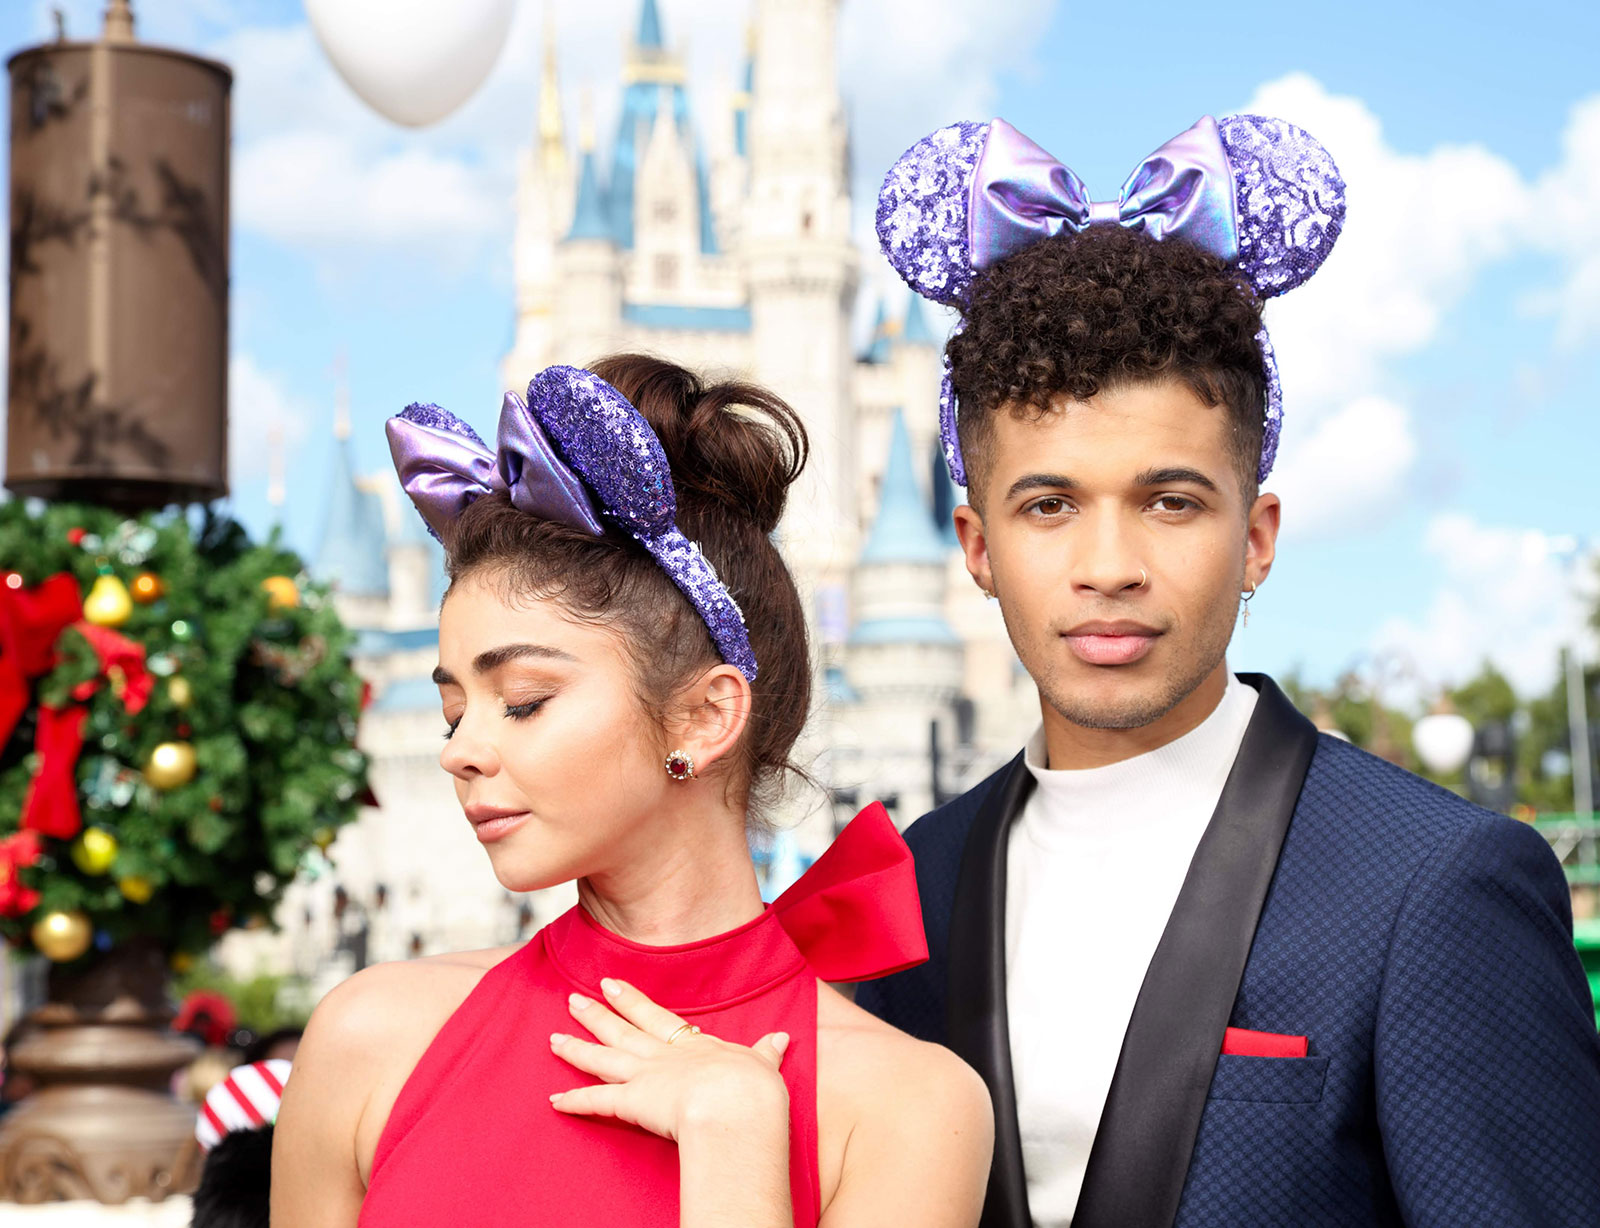 Rebecca Hook, the creator of these incredible pieces, is hosting a trunk show at Uptown Jewelers today (and yesterday) and I am guessing that means these Rose Gold Minnie Mouse Ear Headband .